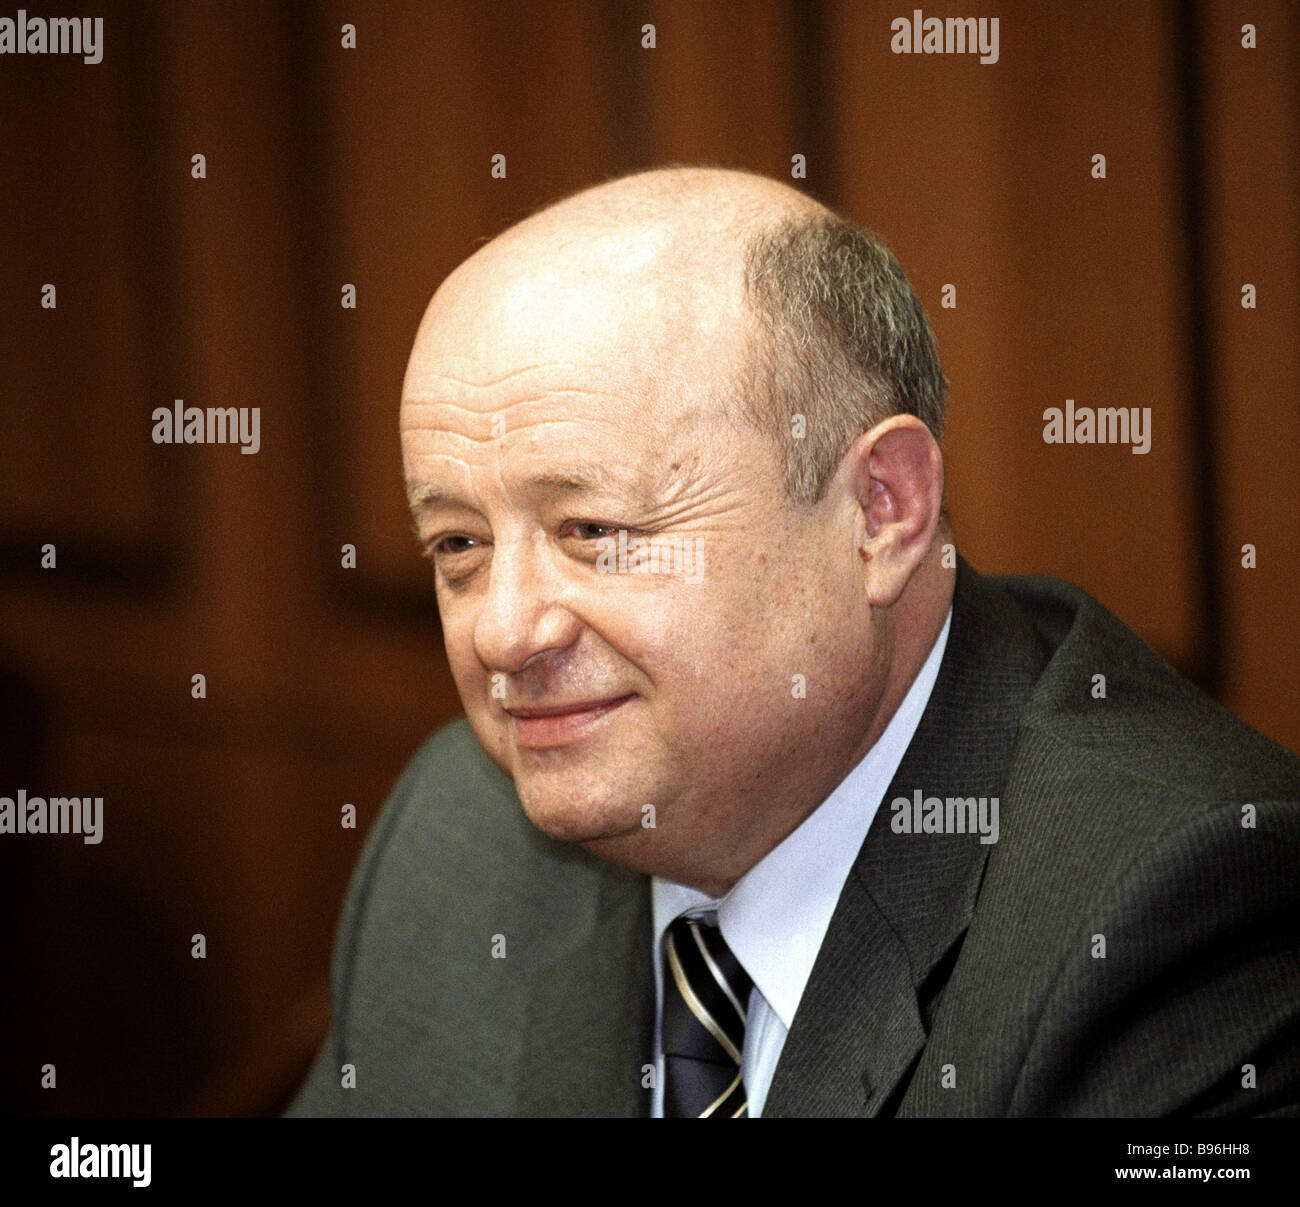 Mikhail Fradkov as Russian prime ministerial nominee 2004 - Stock Image